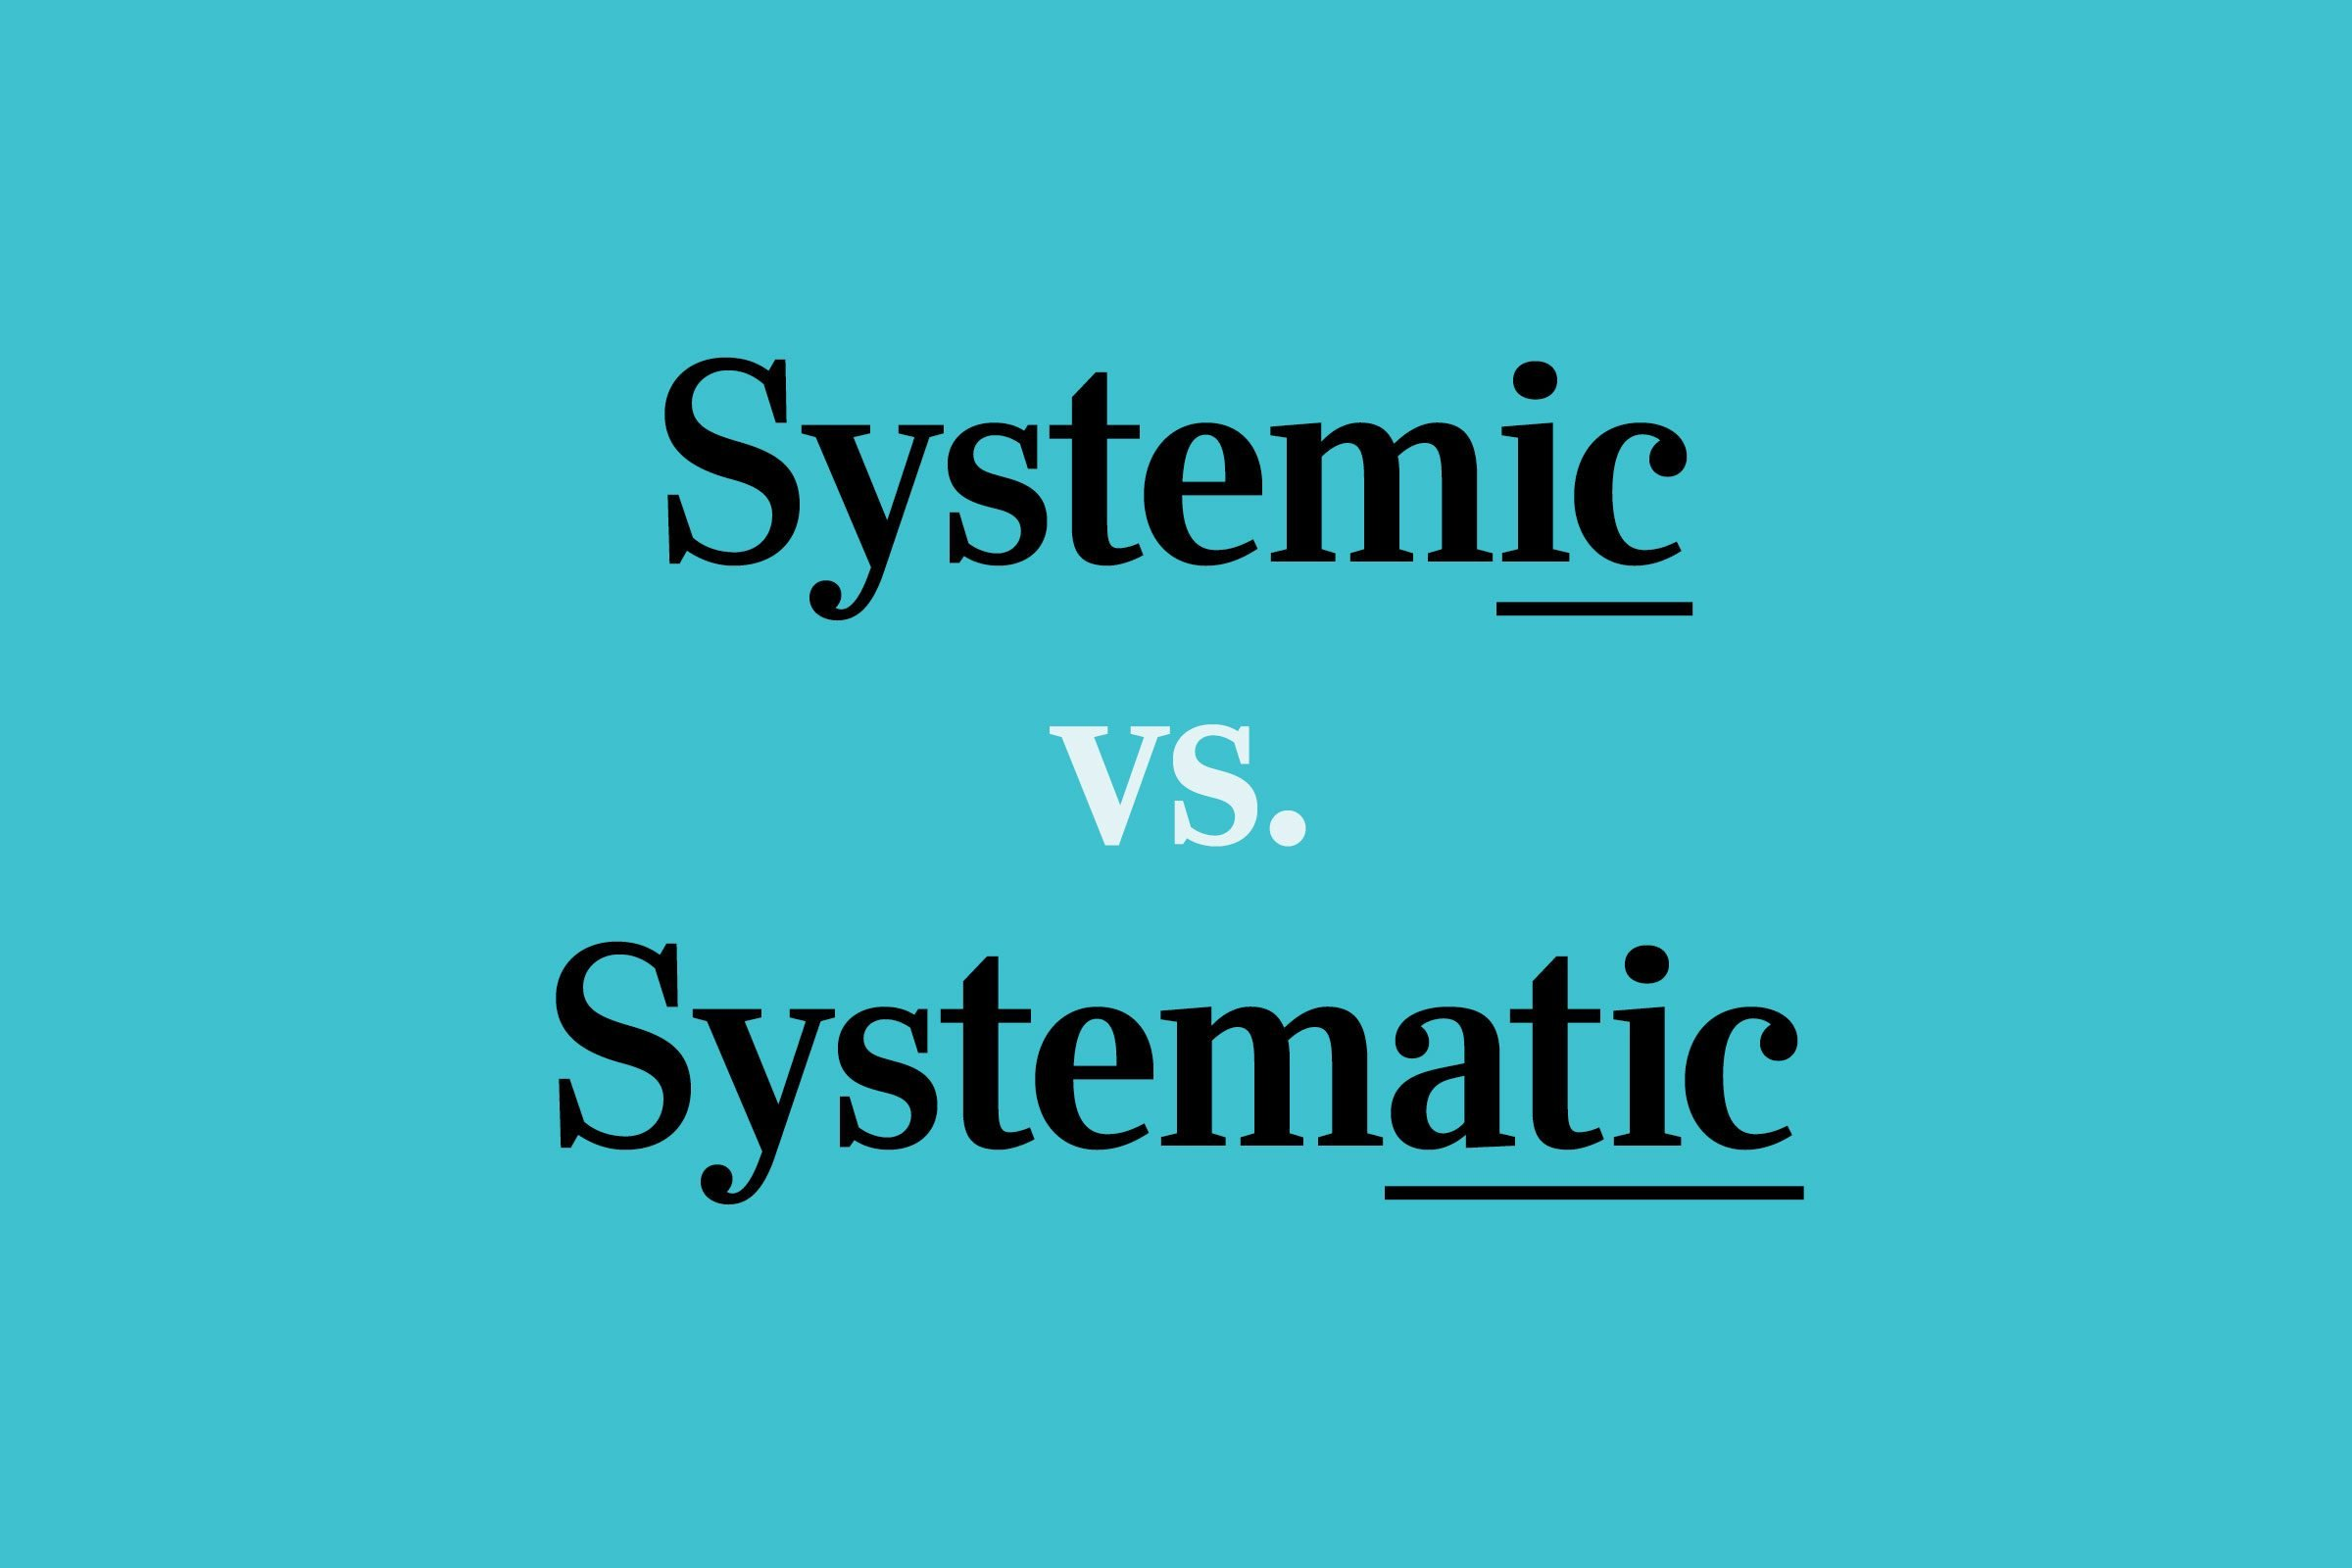 text on blue background: Systemic vs Systematic